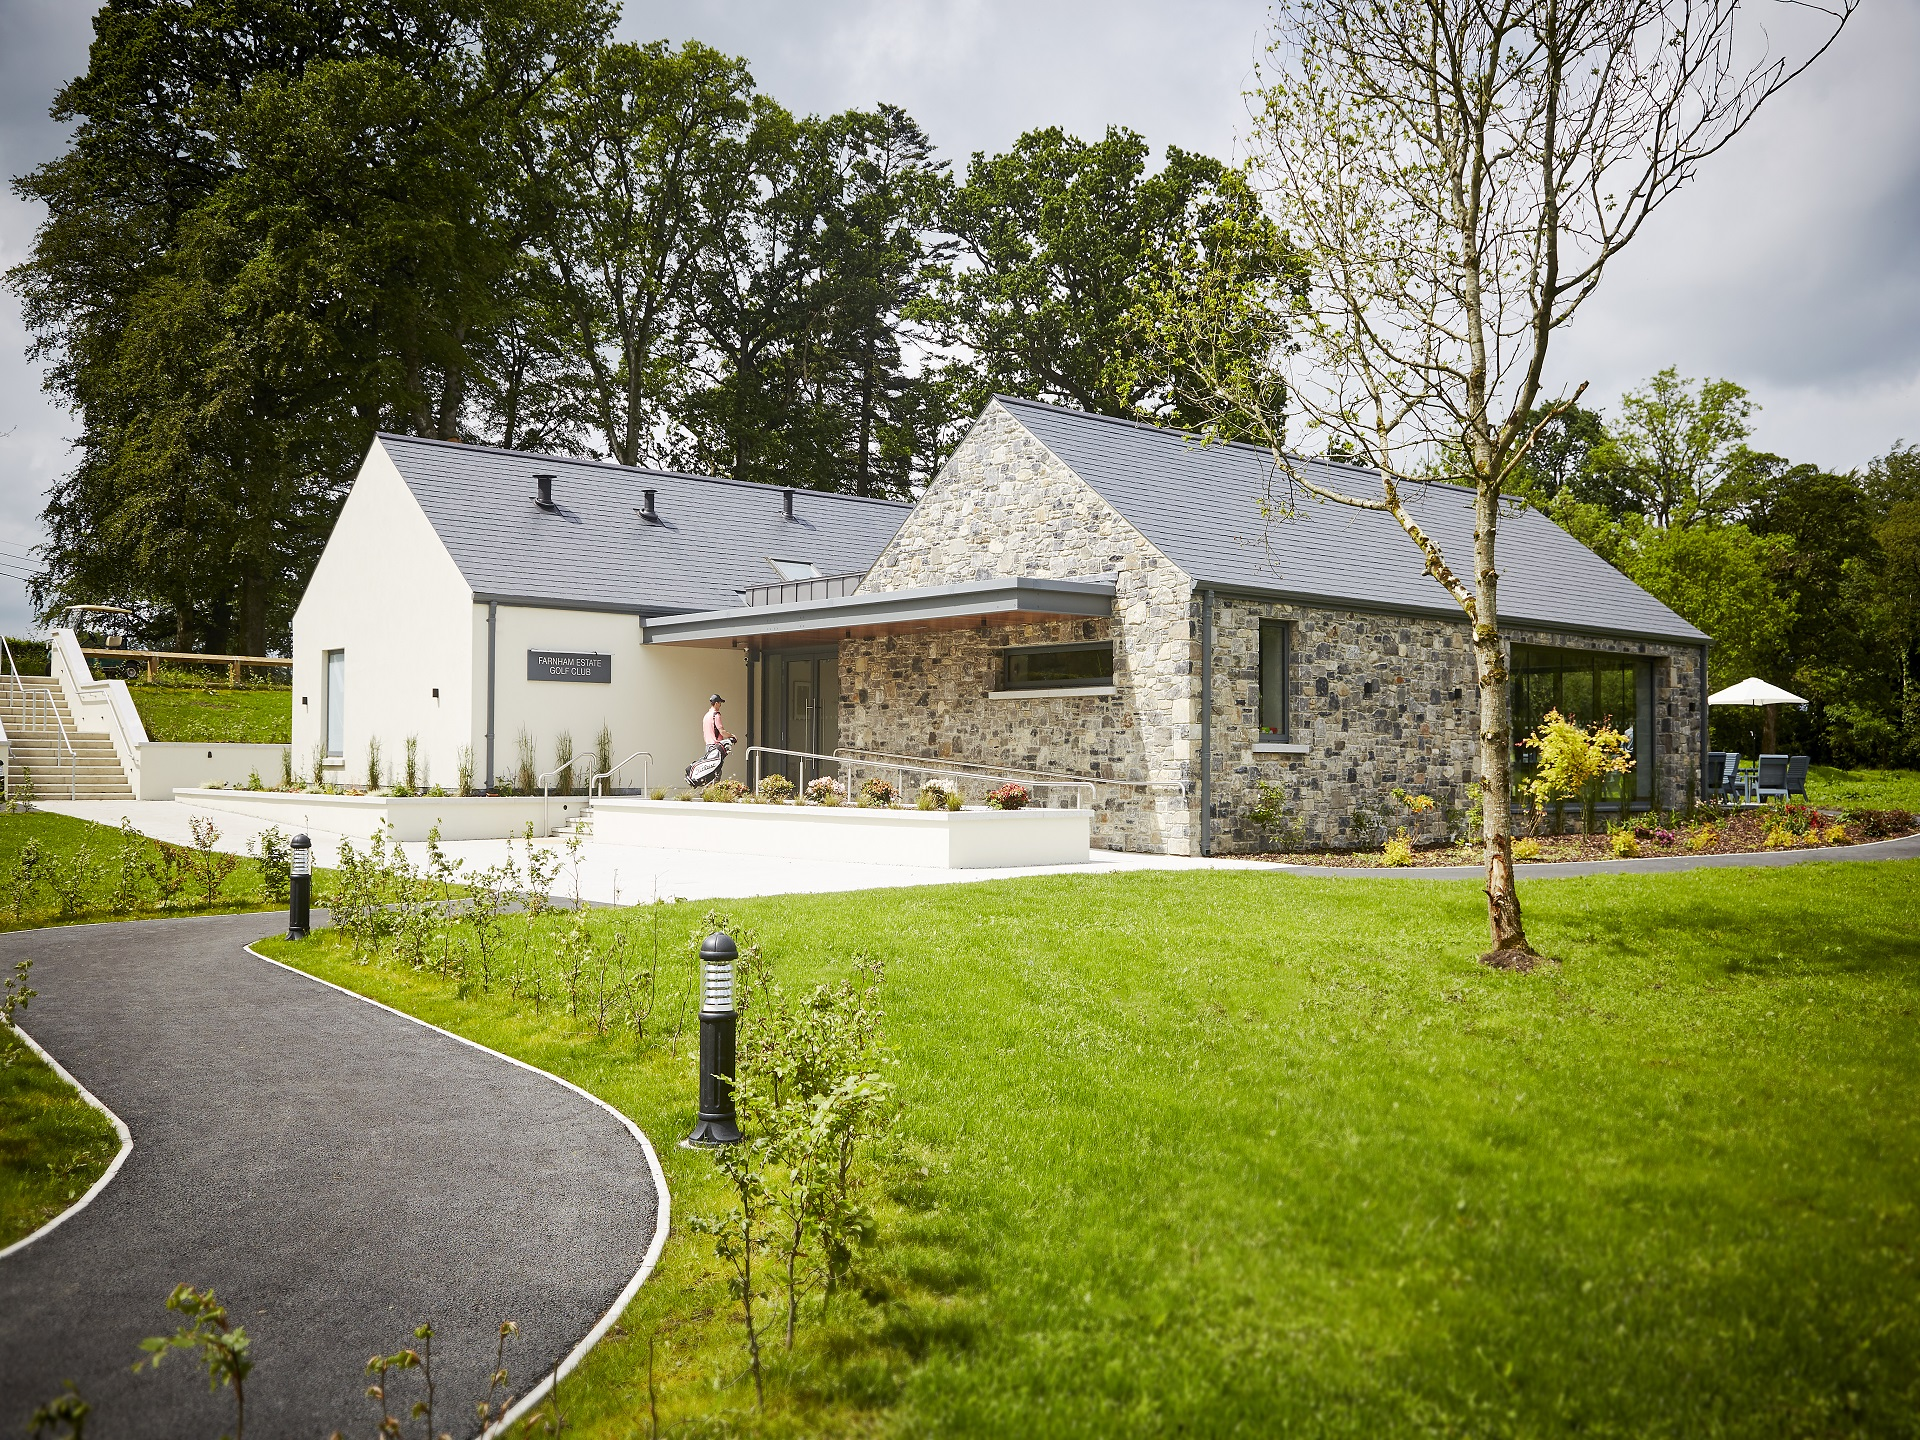 24 Hours in Cavan The Best Places to Eat, Drink And Sleep